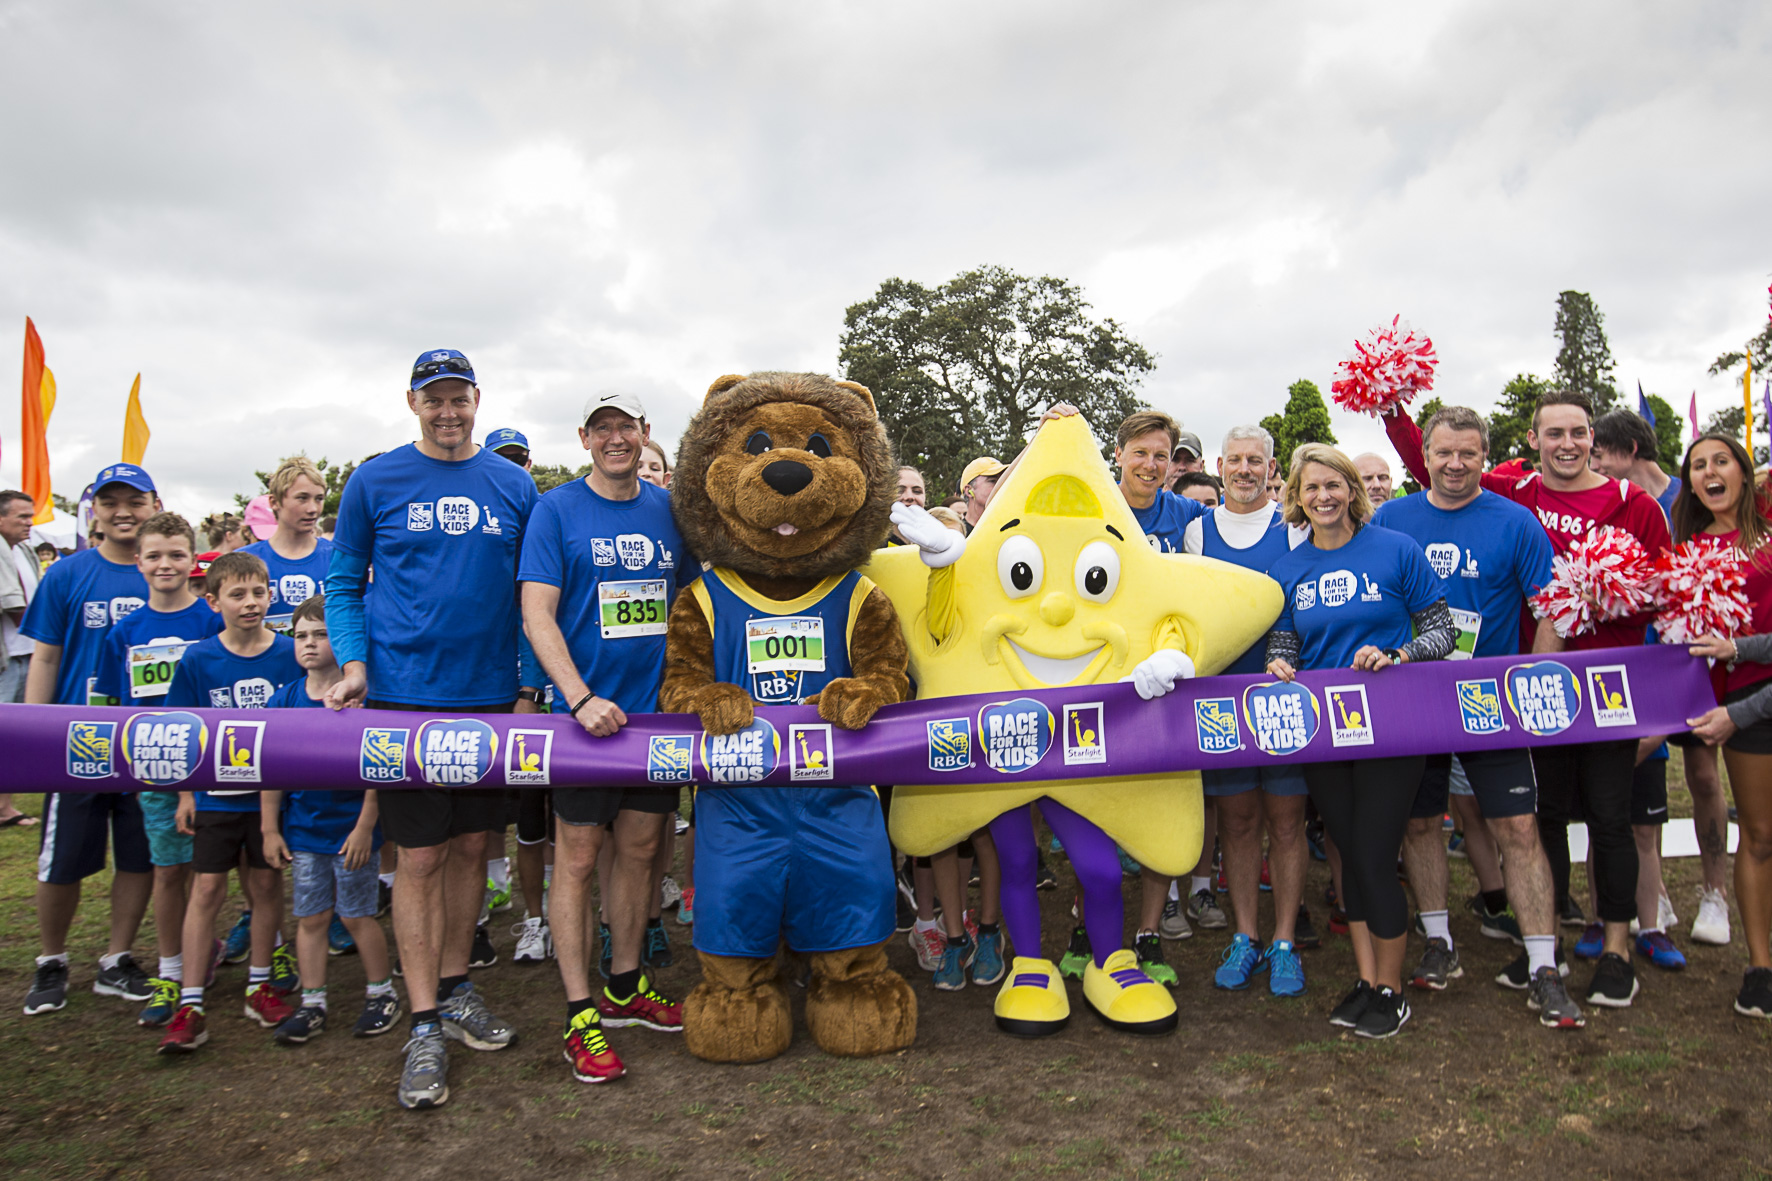 More than 800 people walked and ran through Centennial Park on Saturday in the third annual RBC Race for the Kids in Sydney